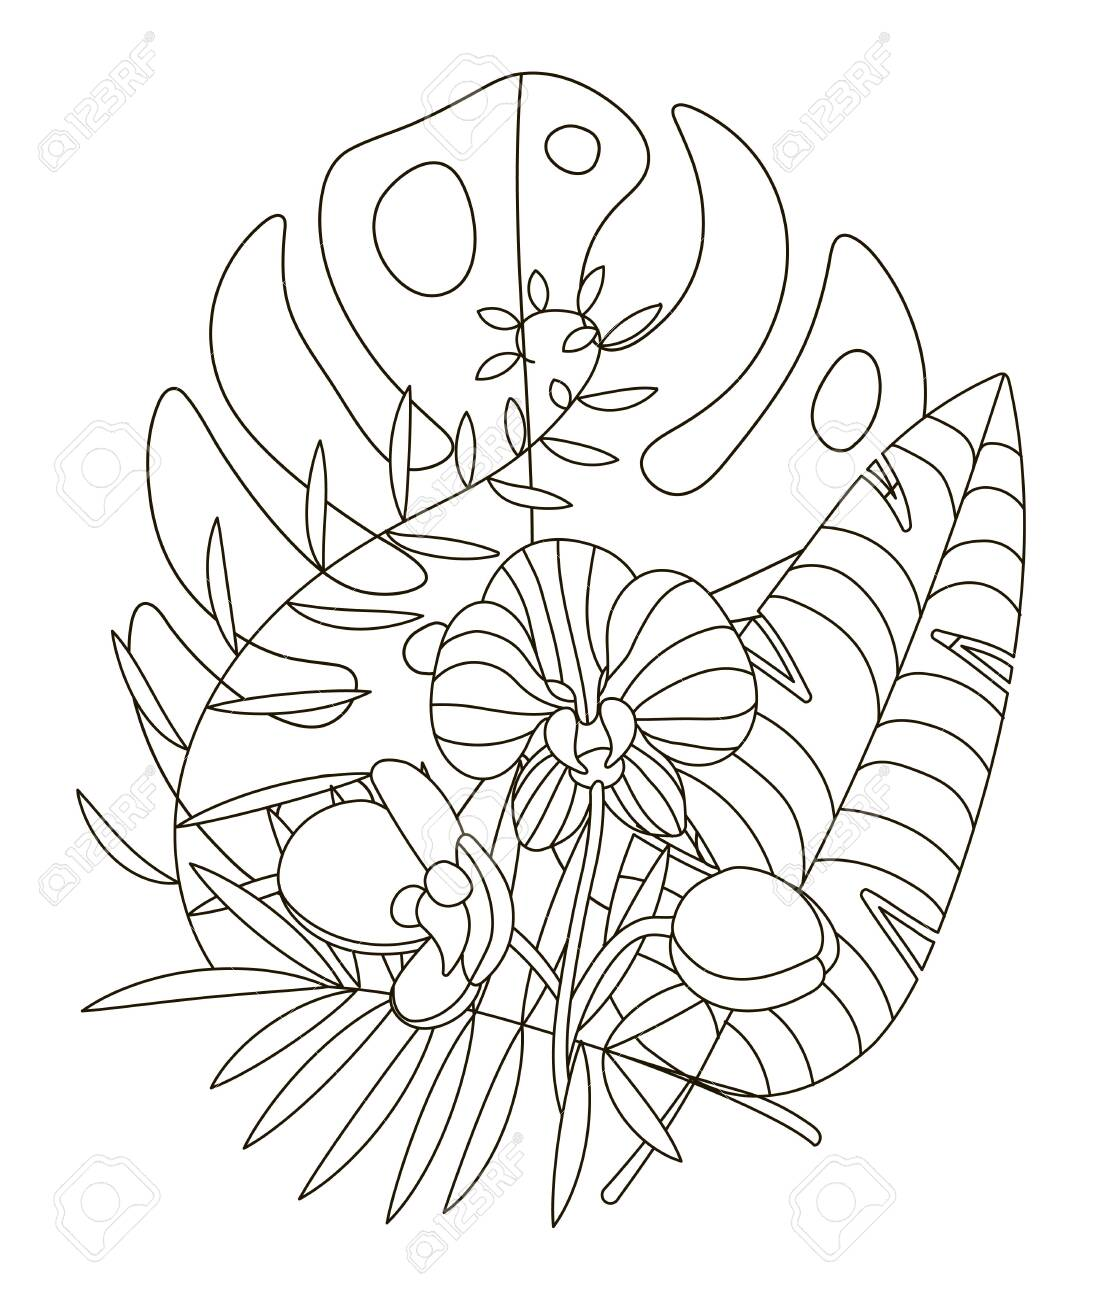 Doodle Coloring Pages April Showers Bring May Flowers Coloring ... | 1300x1102